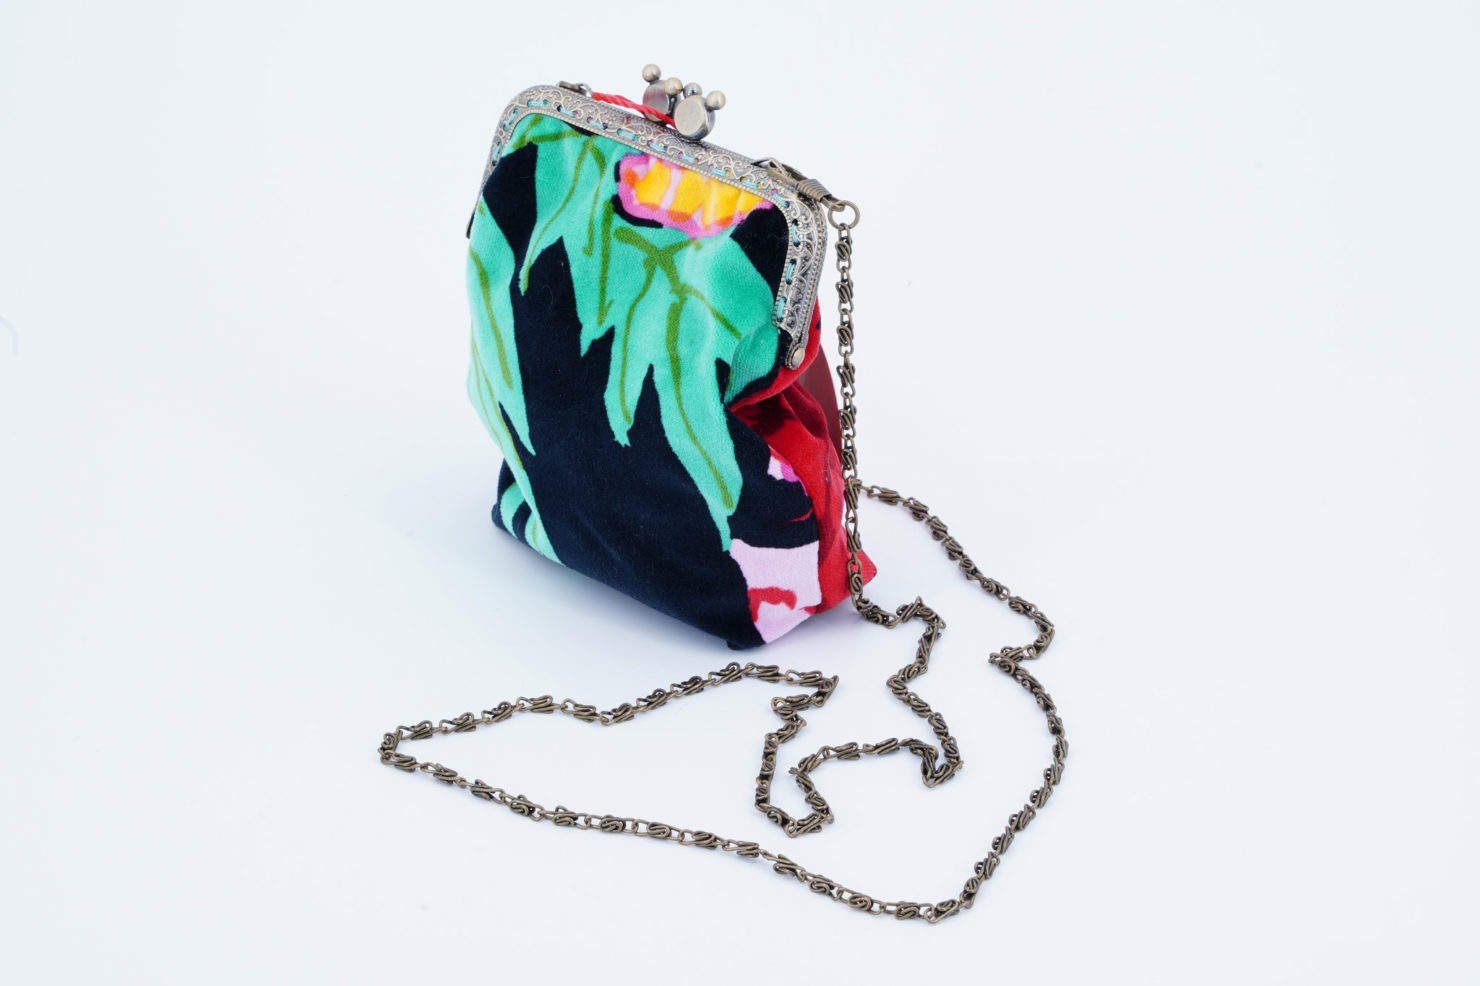 KM 0 HAND MADE CLUTCH IN VINTAGE FLOREAL VELVET M GREEN LEAVES